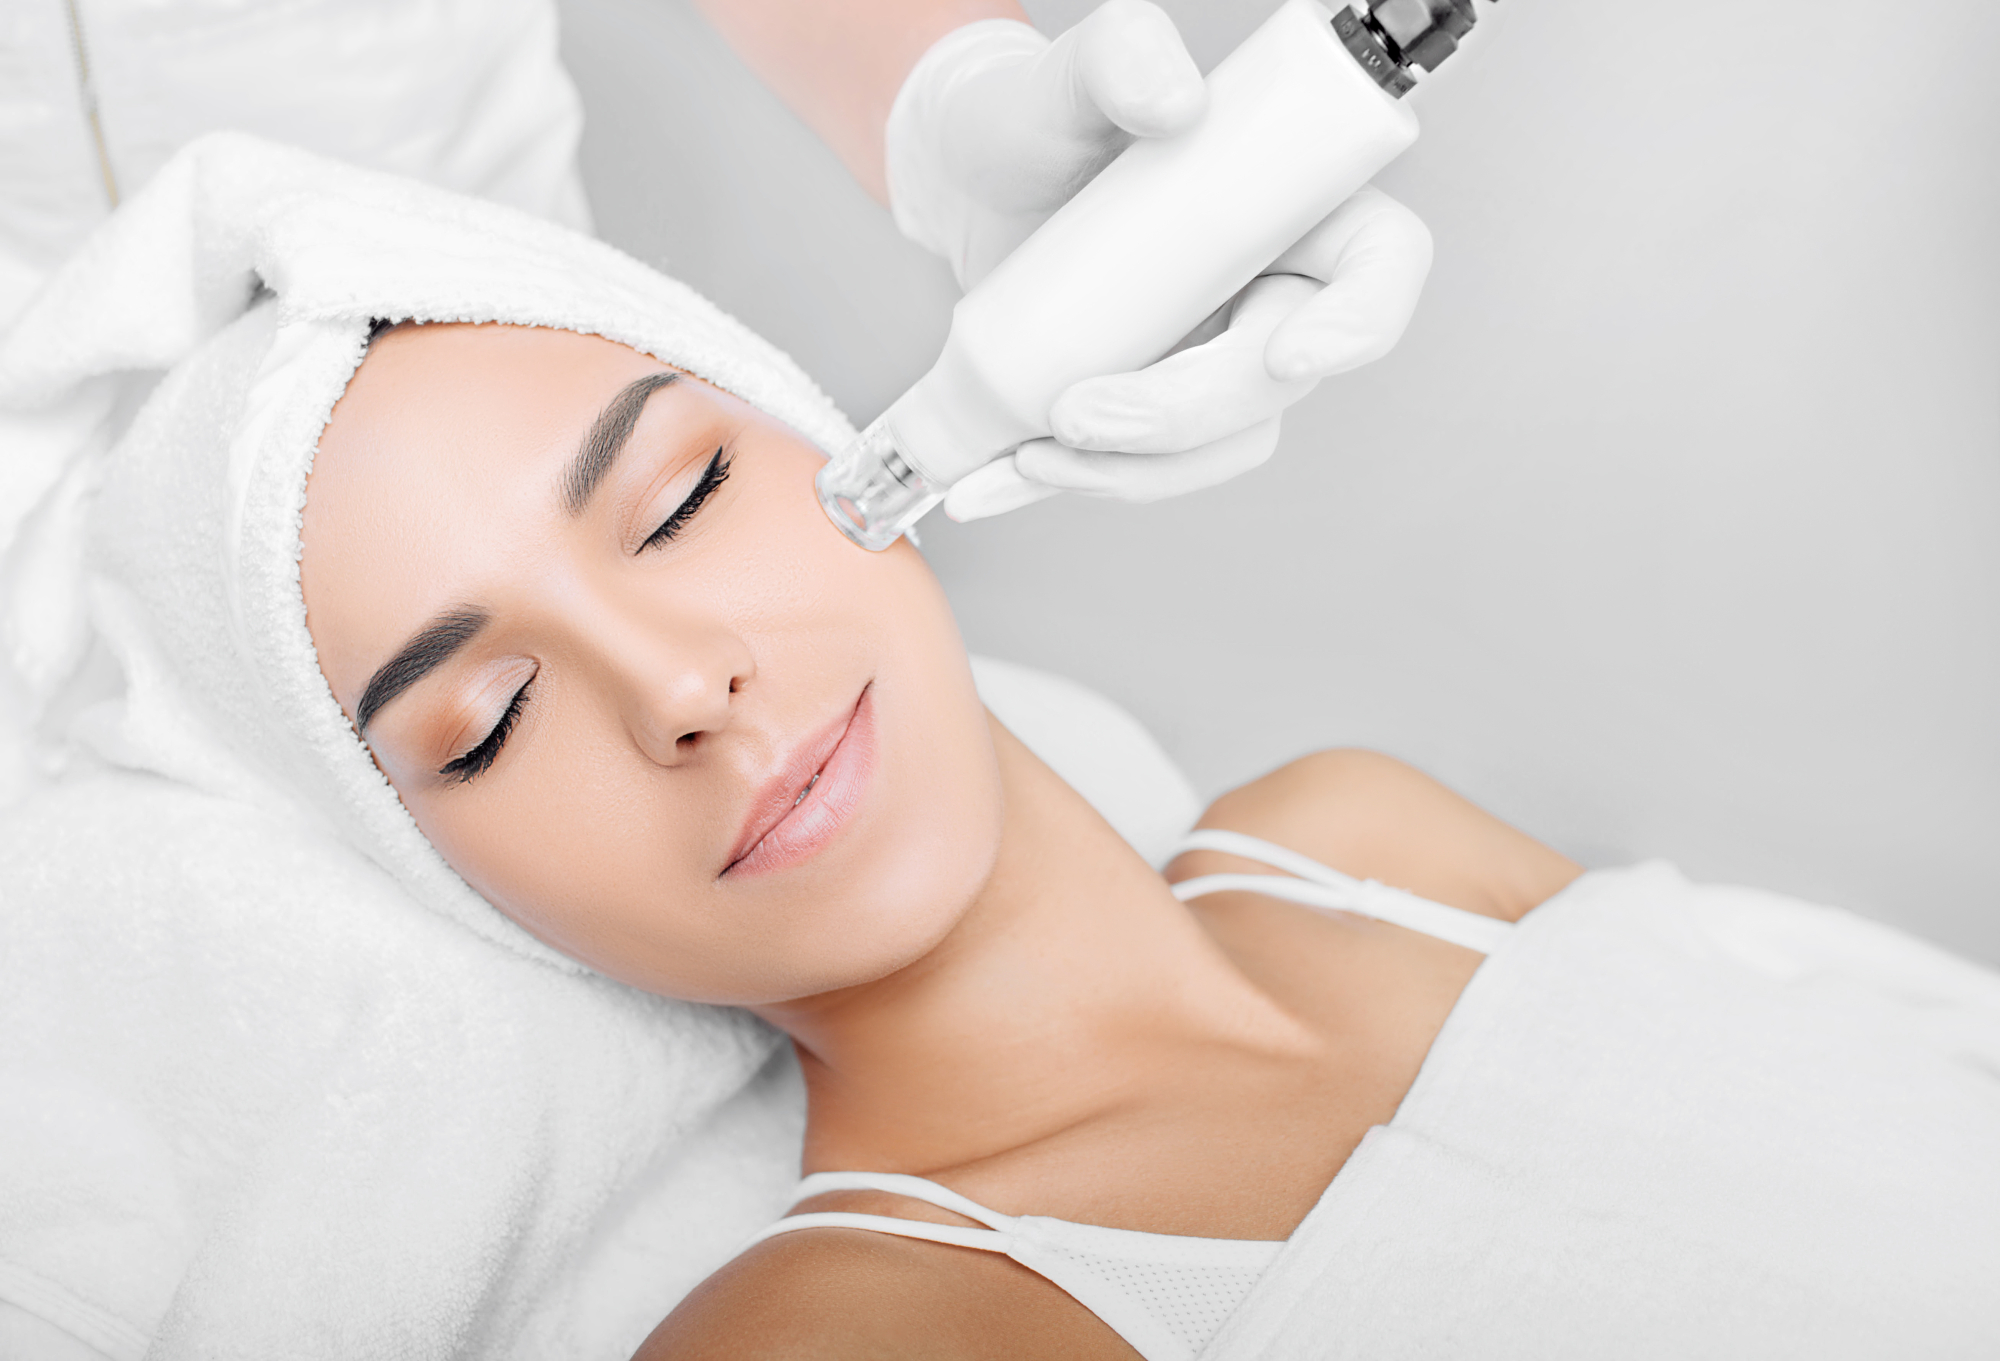 relaxed woman receiving microneedling treatment to her face